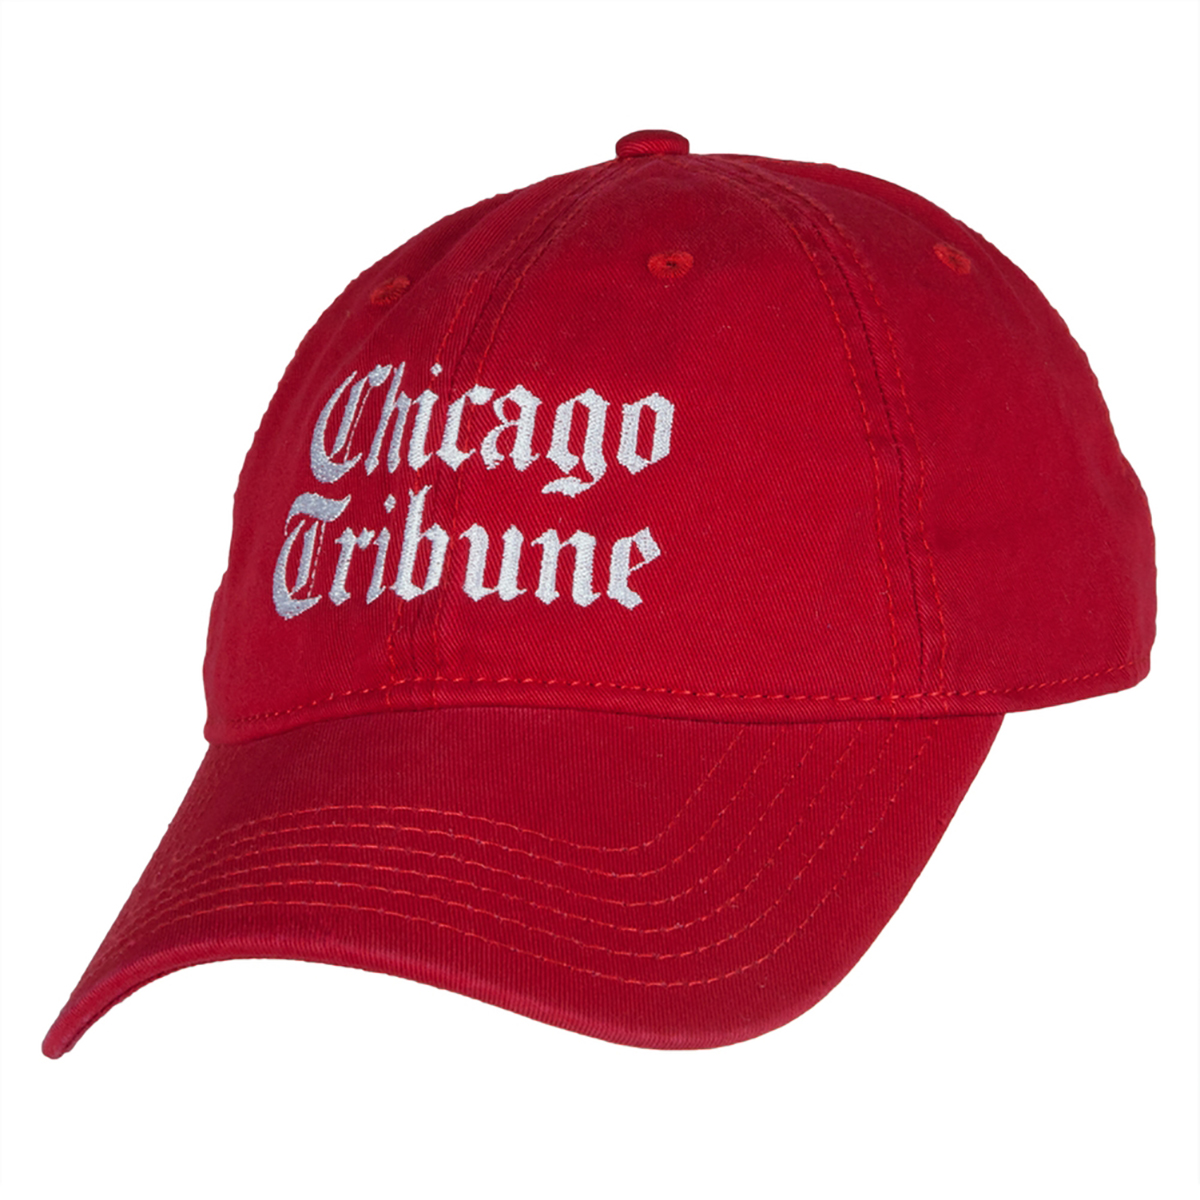 Chicago Tribune Red Adjustable Cap